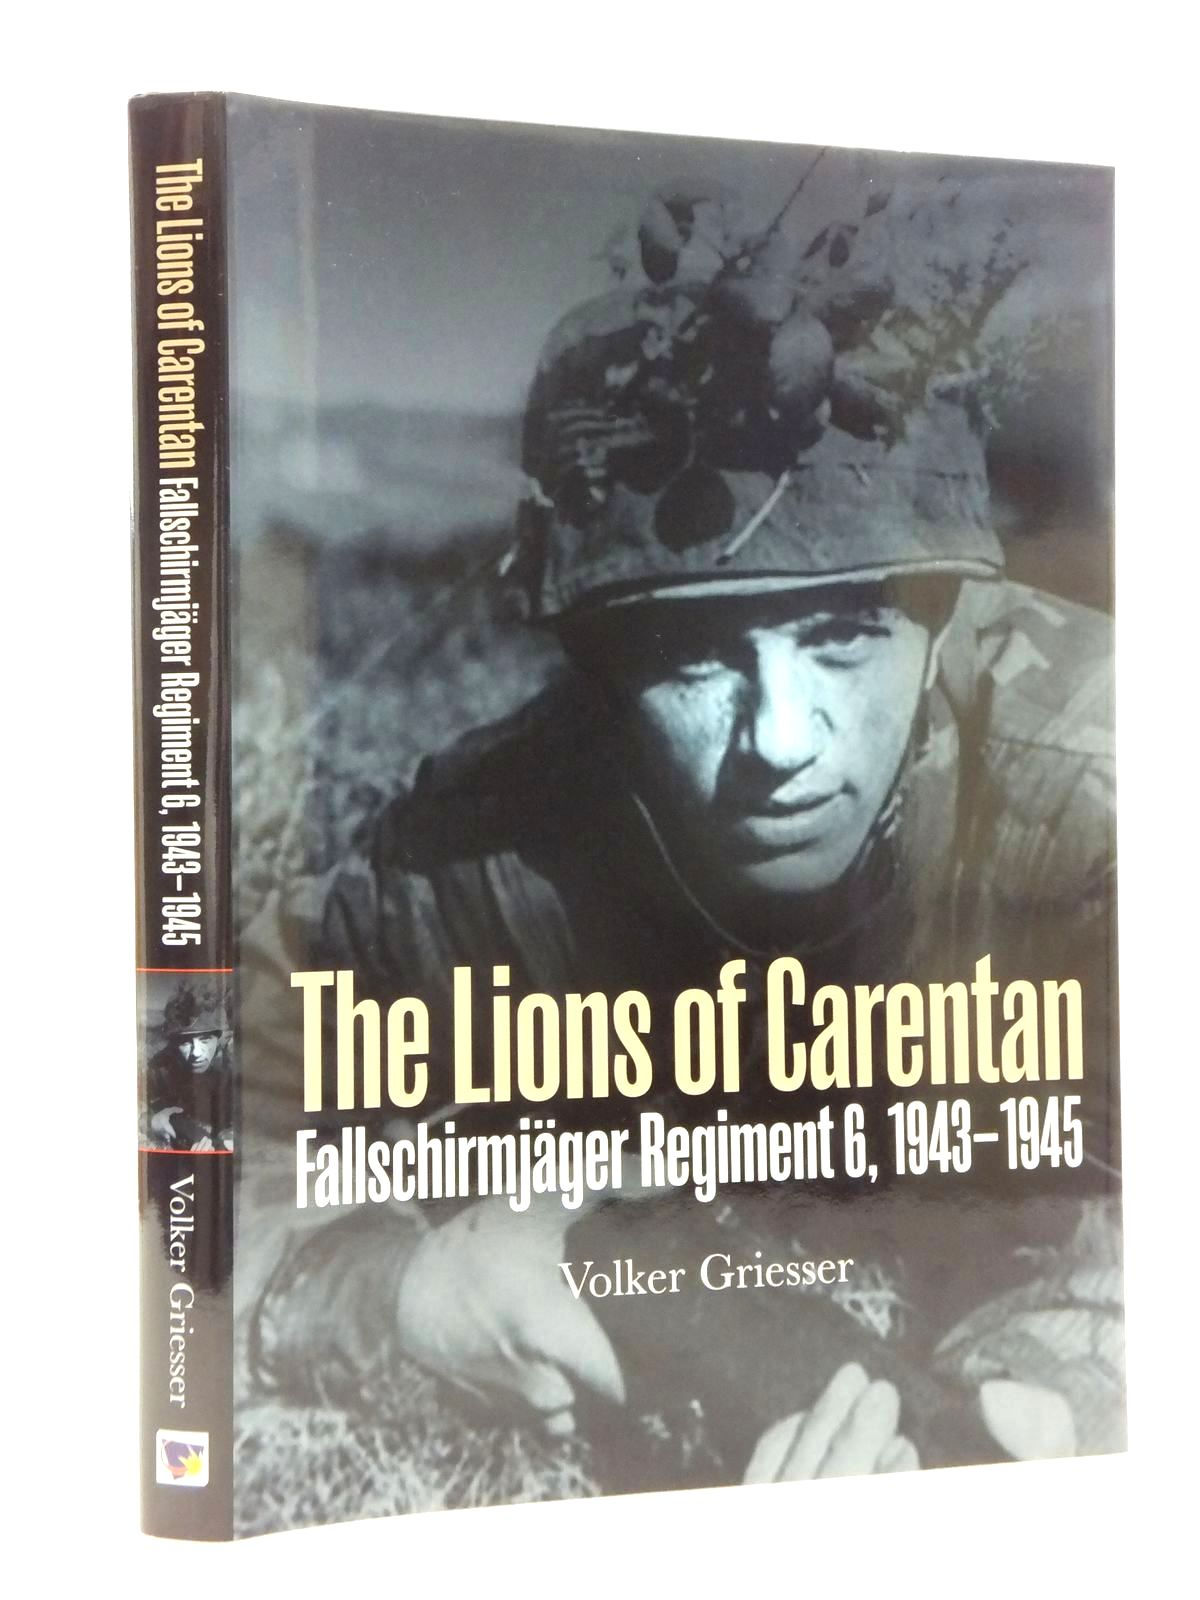 Photo of THE LIONS OF CARENTAN: FALLSCHIRMJAGER REGIMENT 6, 1943-1945 written by Griesser, Volker published by Casemate (STOCK CODE: 1815181)  for sale by Stella & Rose's Books